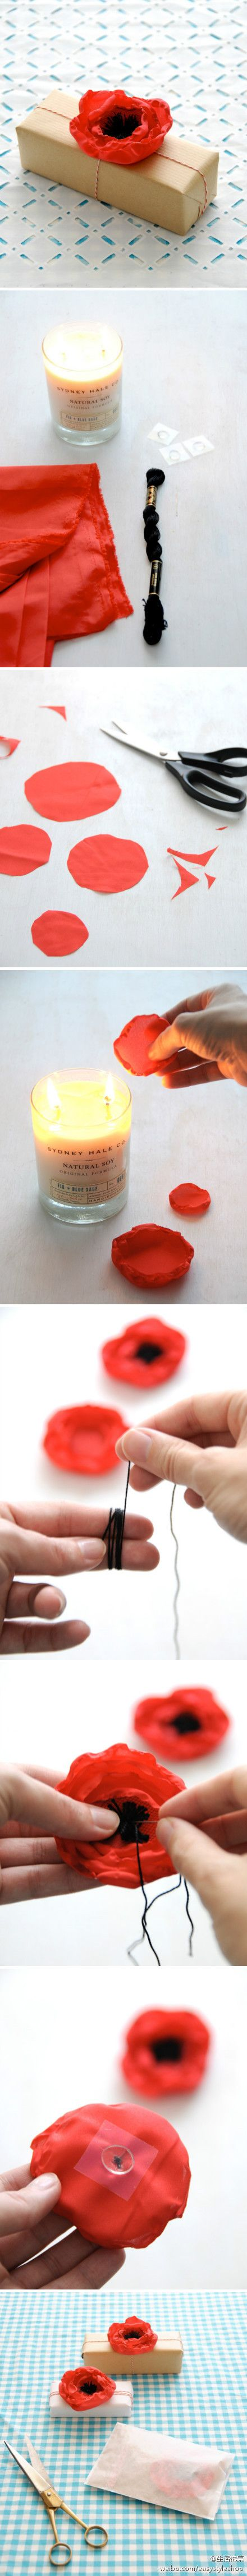 Making fabric poppies